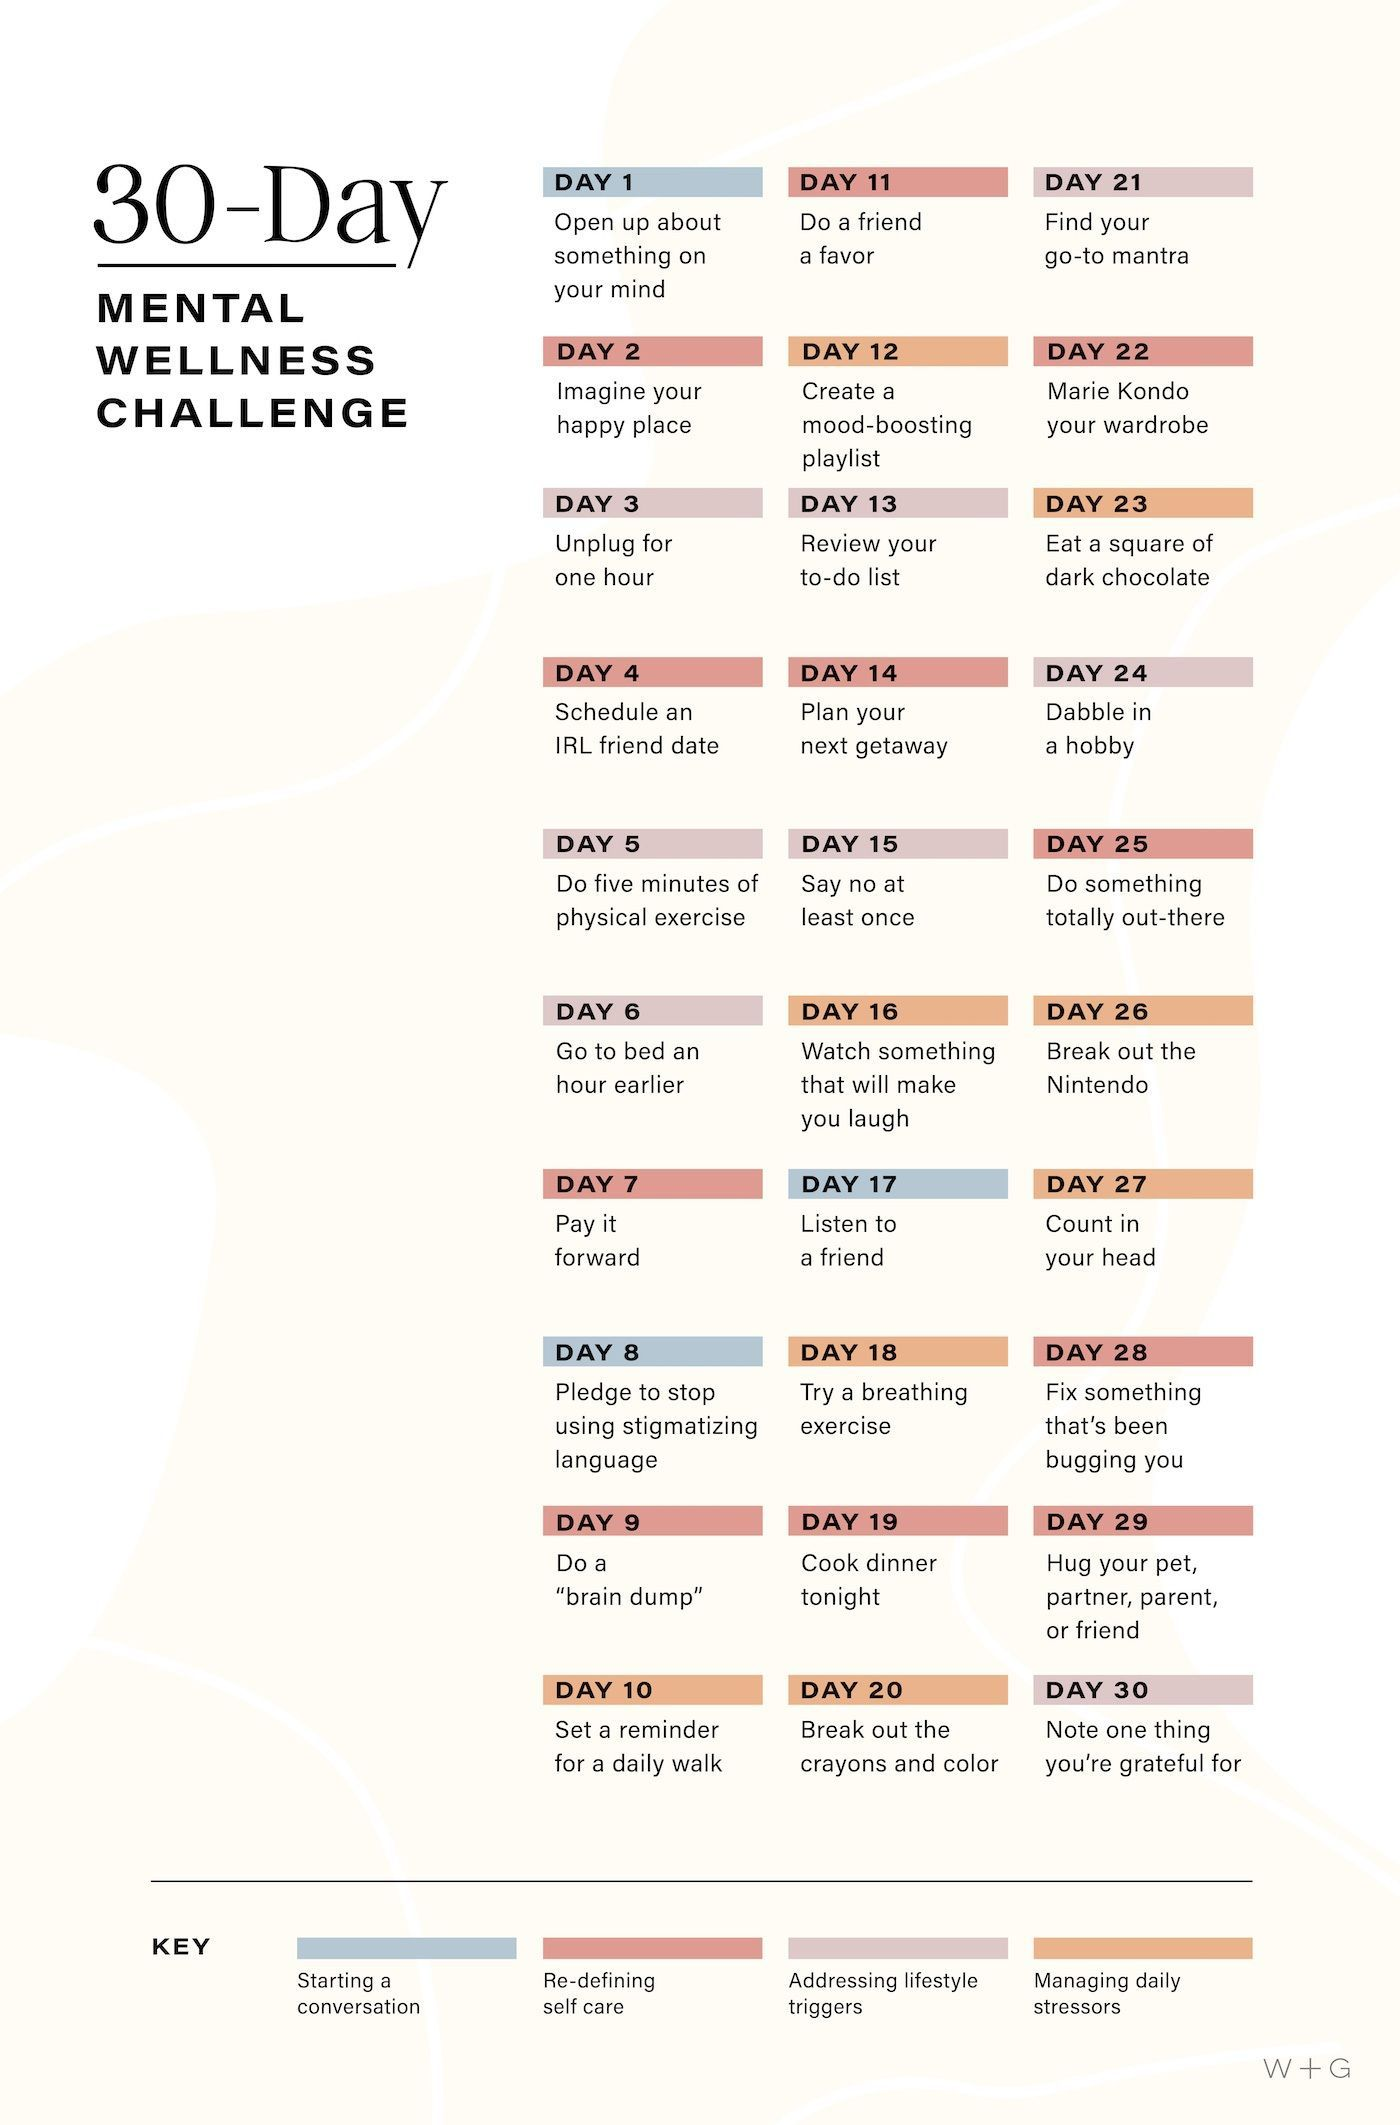 30-day mental wellness challenge for better mental well-being | Well+Good